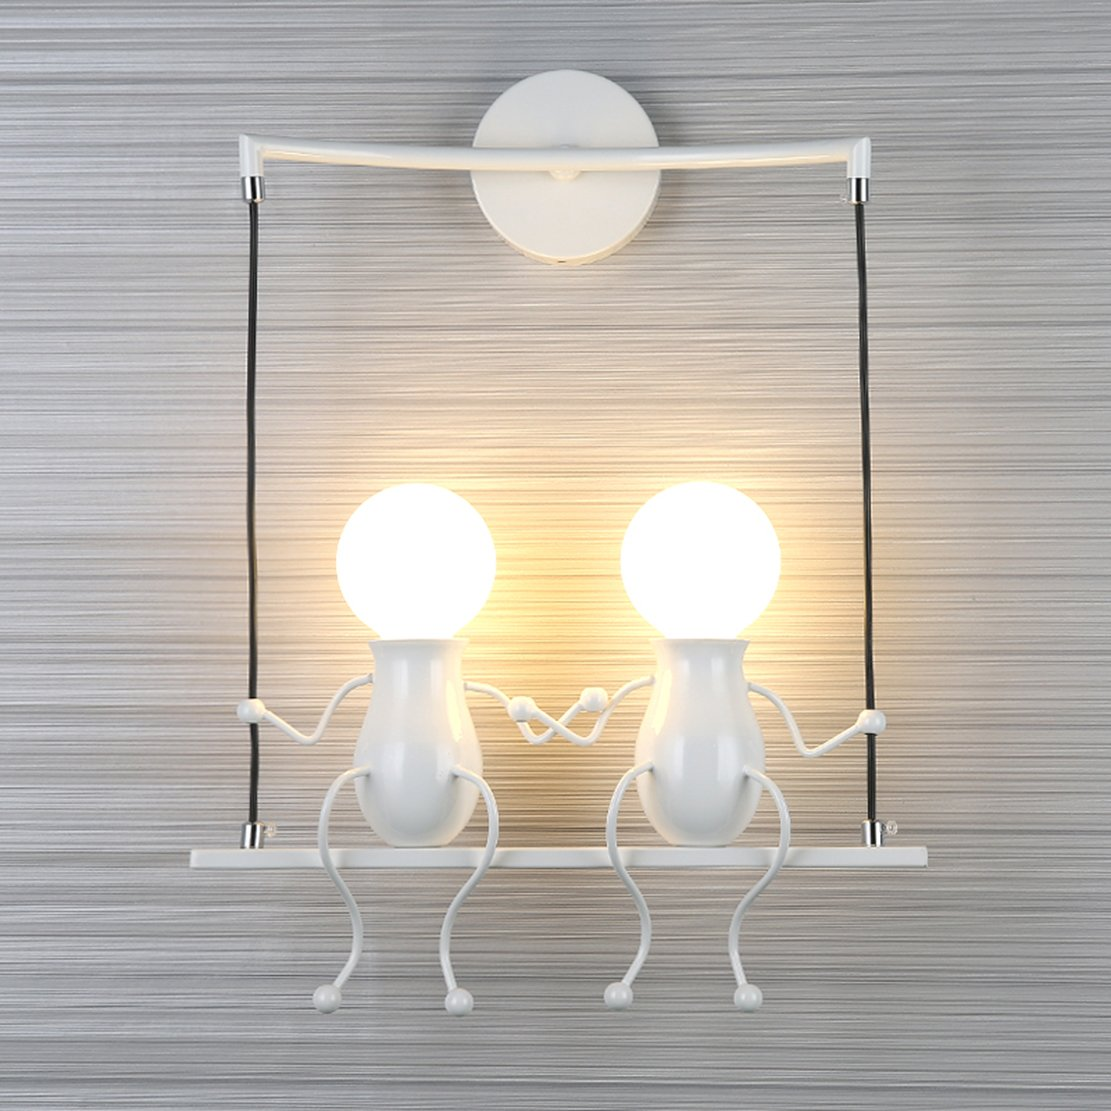 SOUTHPO LED Wall Light Fixtures Creative Double Little People Mini Wall Sconces Lighting Modern Decor Adjustable Swing Metal Bedside Lamp Children Cartoon Doll Gift Wall Lamps Bedroom 2×E26 (White)